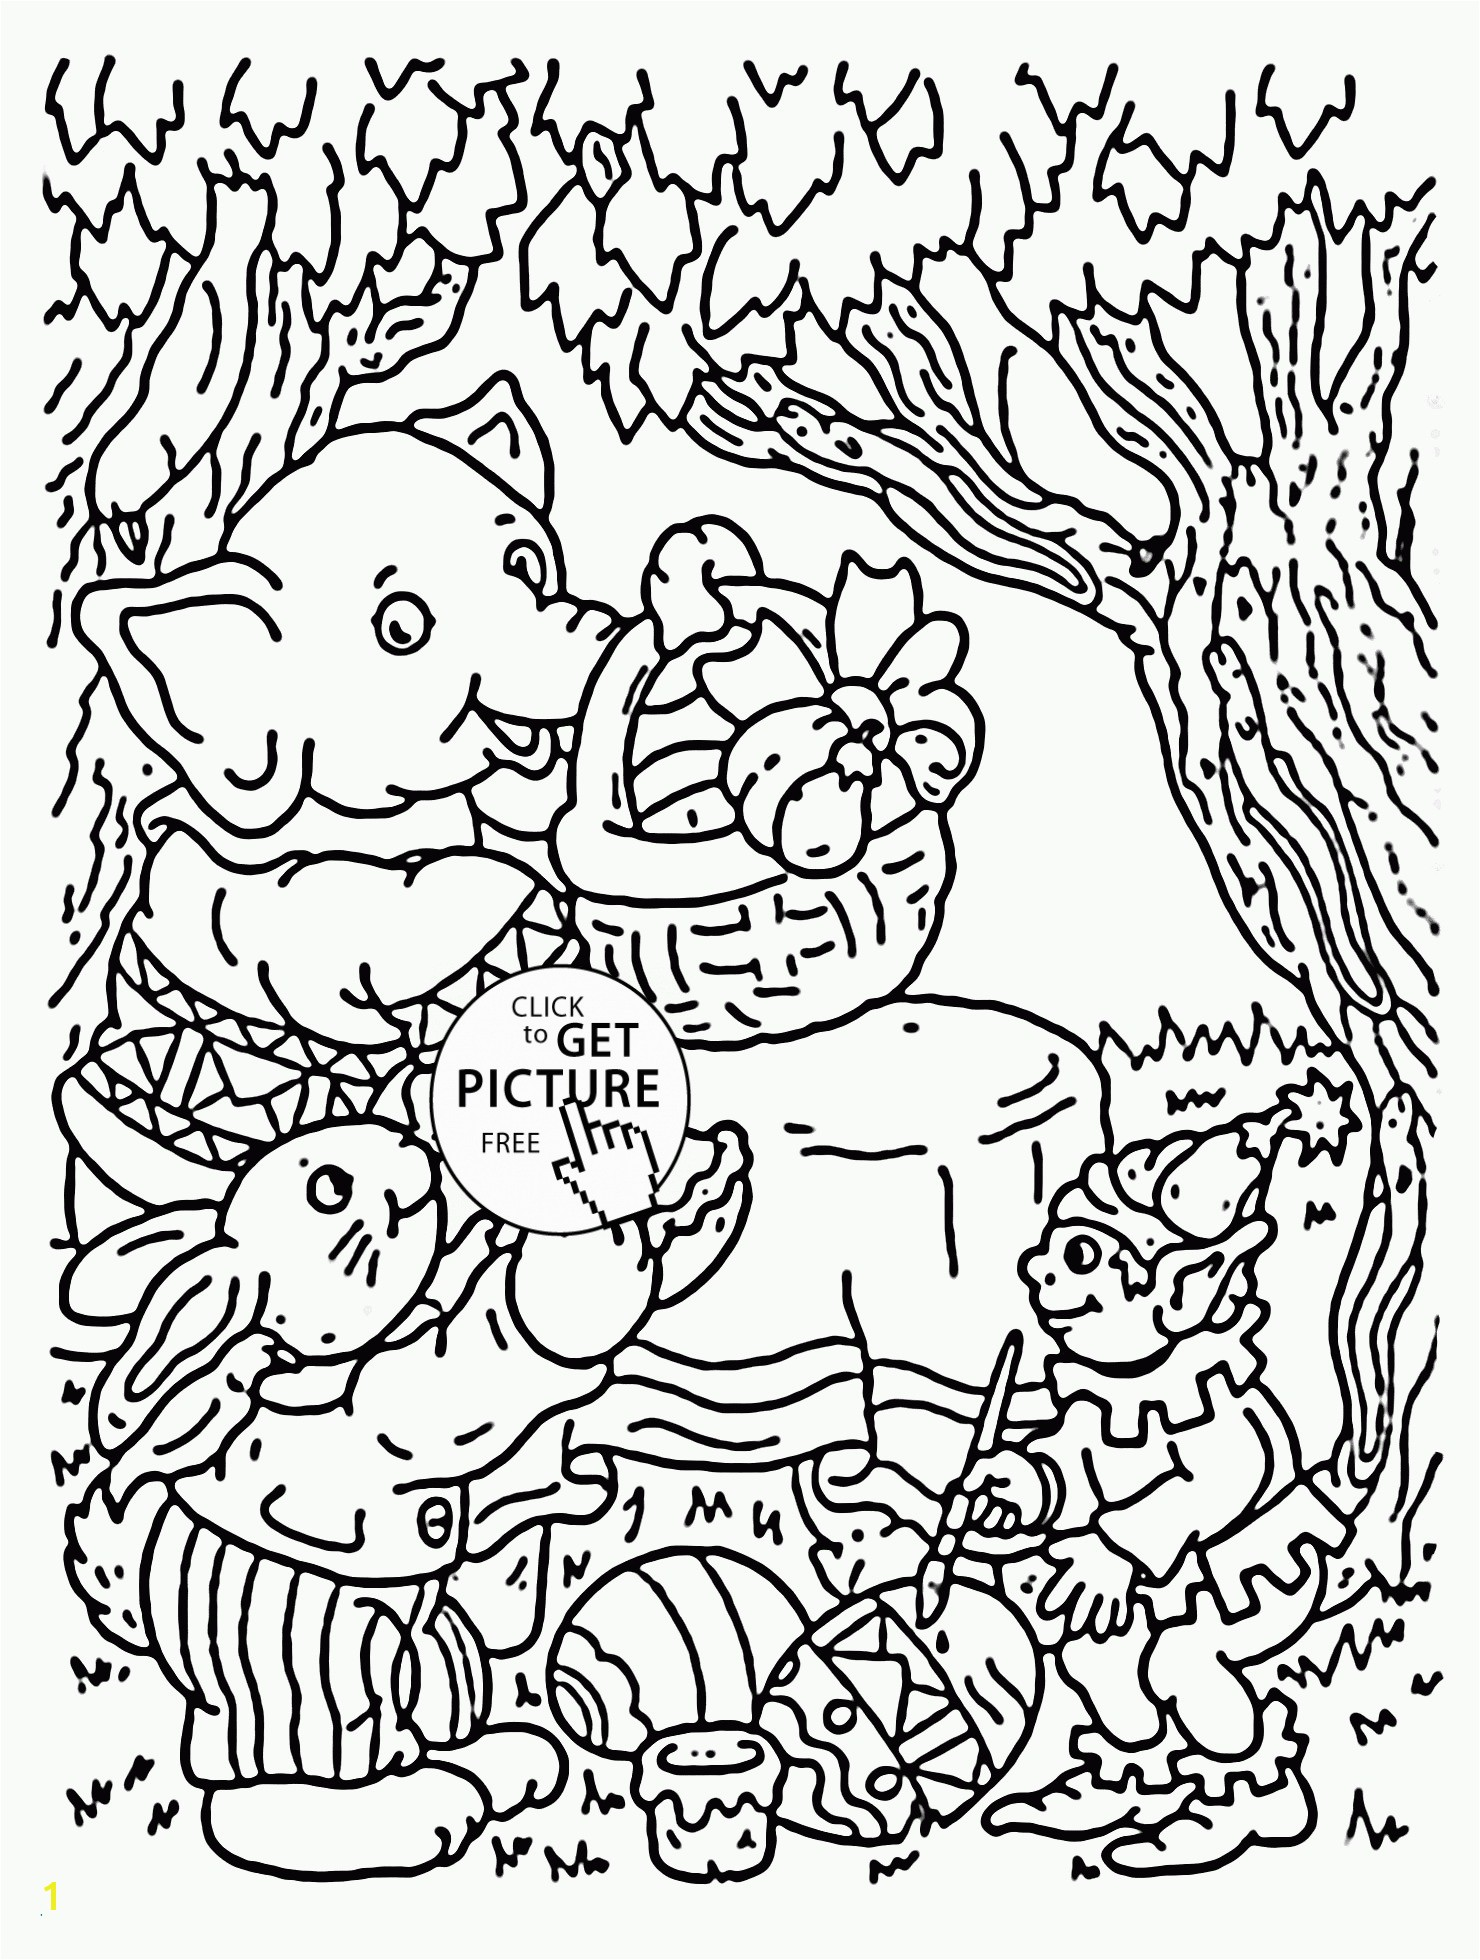 Easter In the forest Coloring Page for Kids Coloring Pages Color Page New Children Colouring